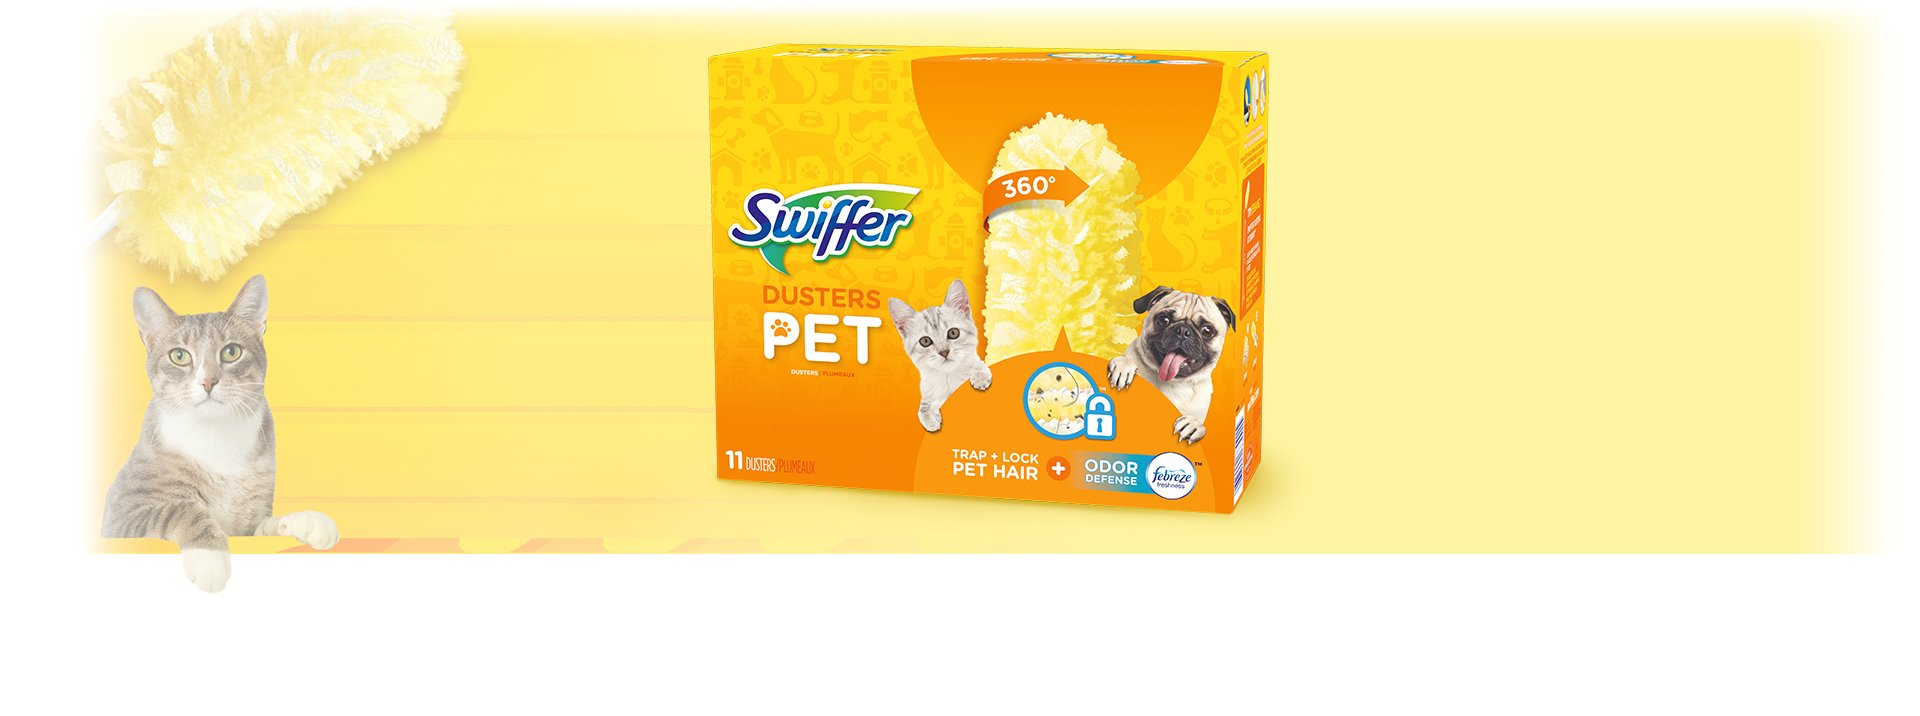 Swiffer 360 Dusters Multi Surface Pet Refills, Febreze Odor Defense, 11 Count by Swiffer (Image #2)